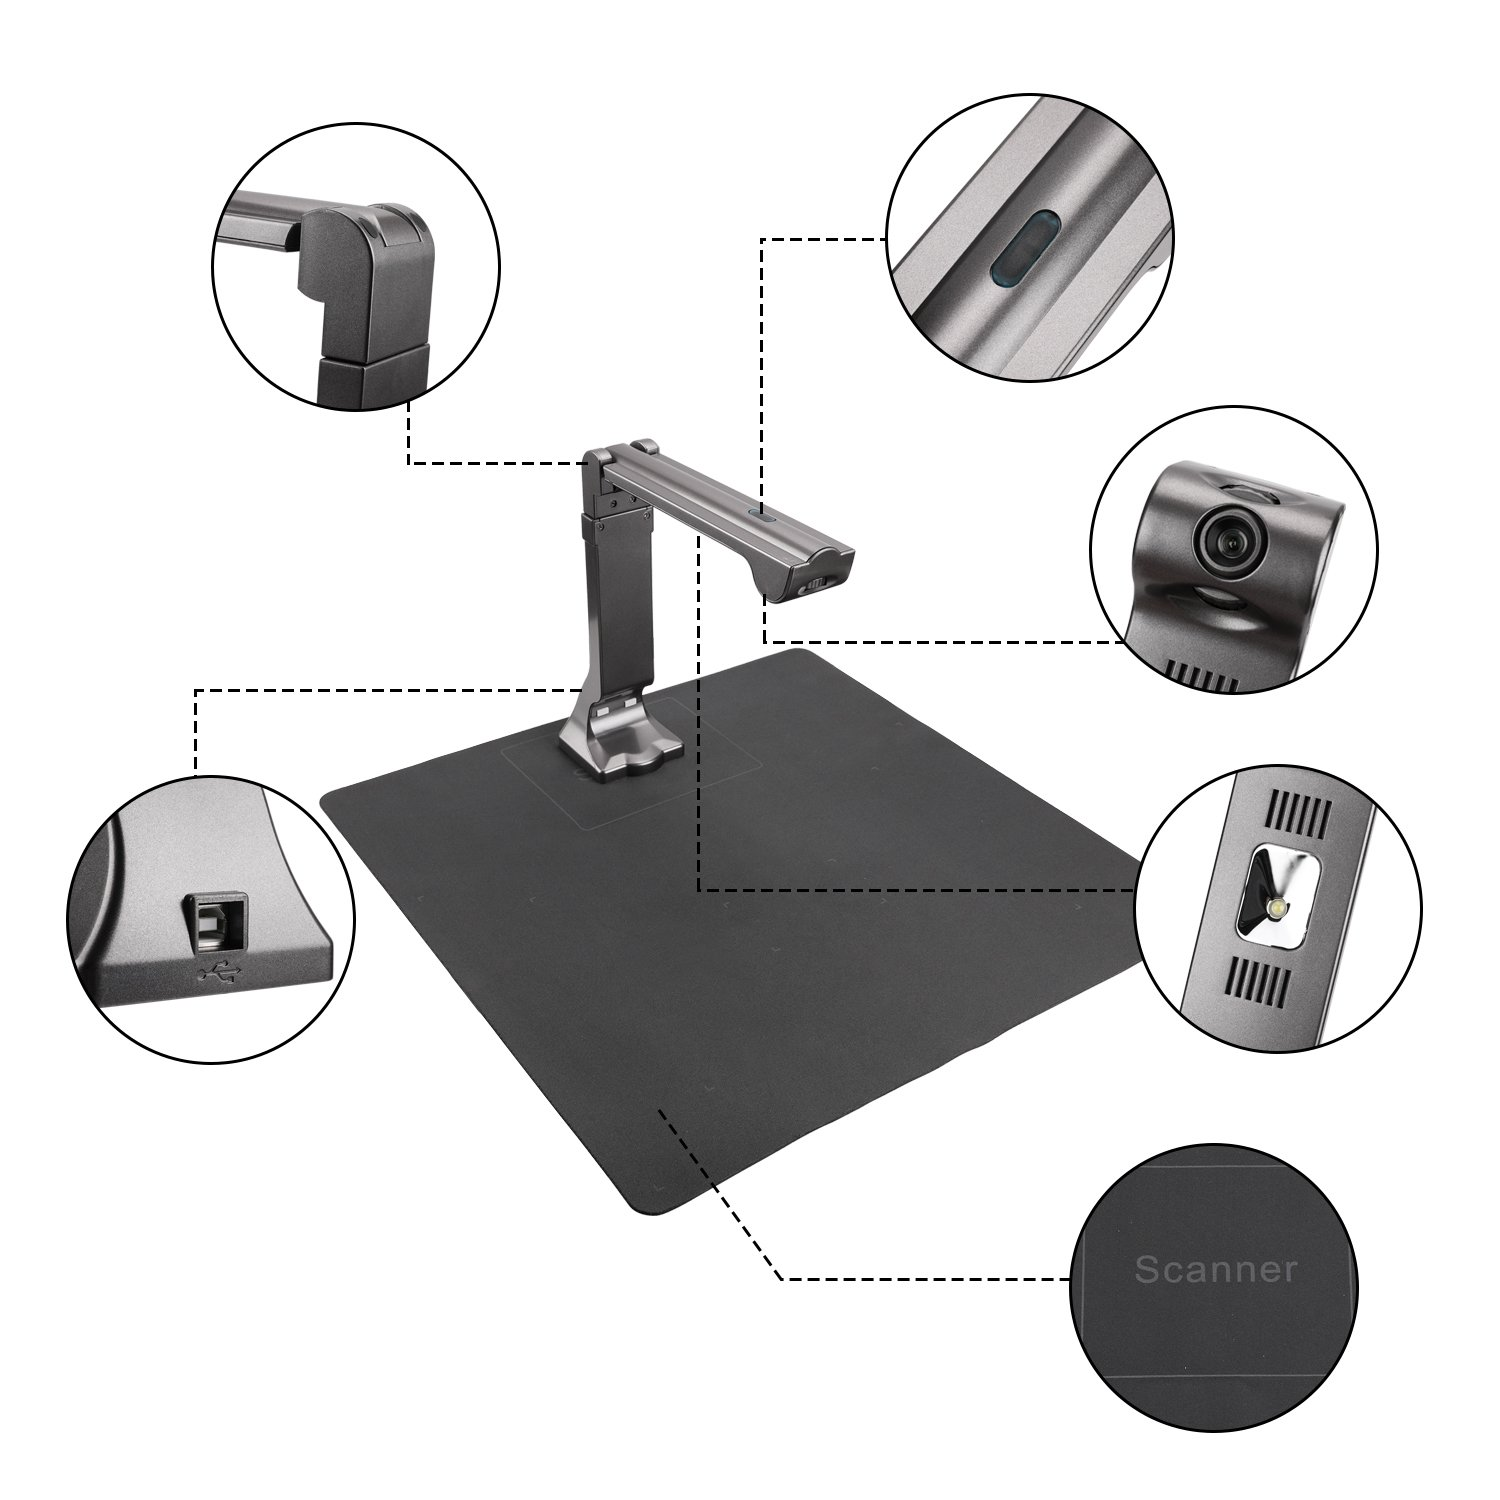 eloam Portable USB Document Camera Scanner S600 with,A3 Capture Size,5 MegaPixel CMOS, High-Definition Digital Visual Presenter by eloam (Image #2)